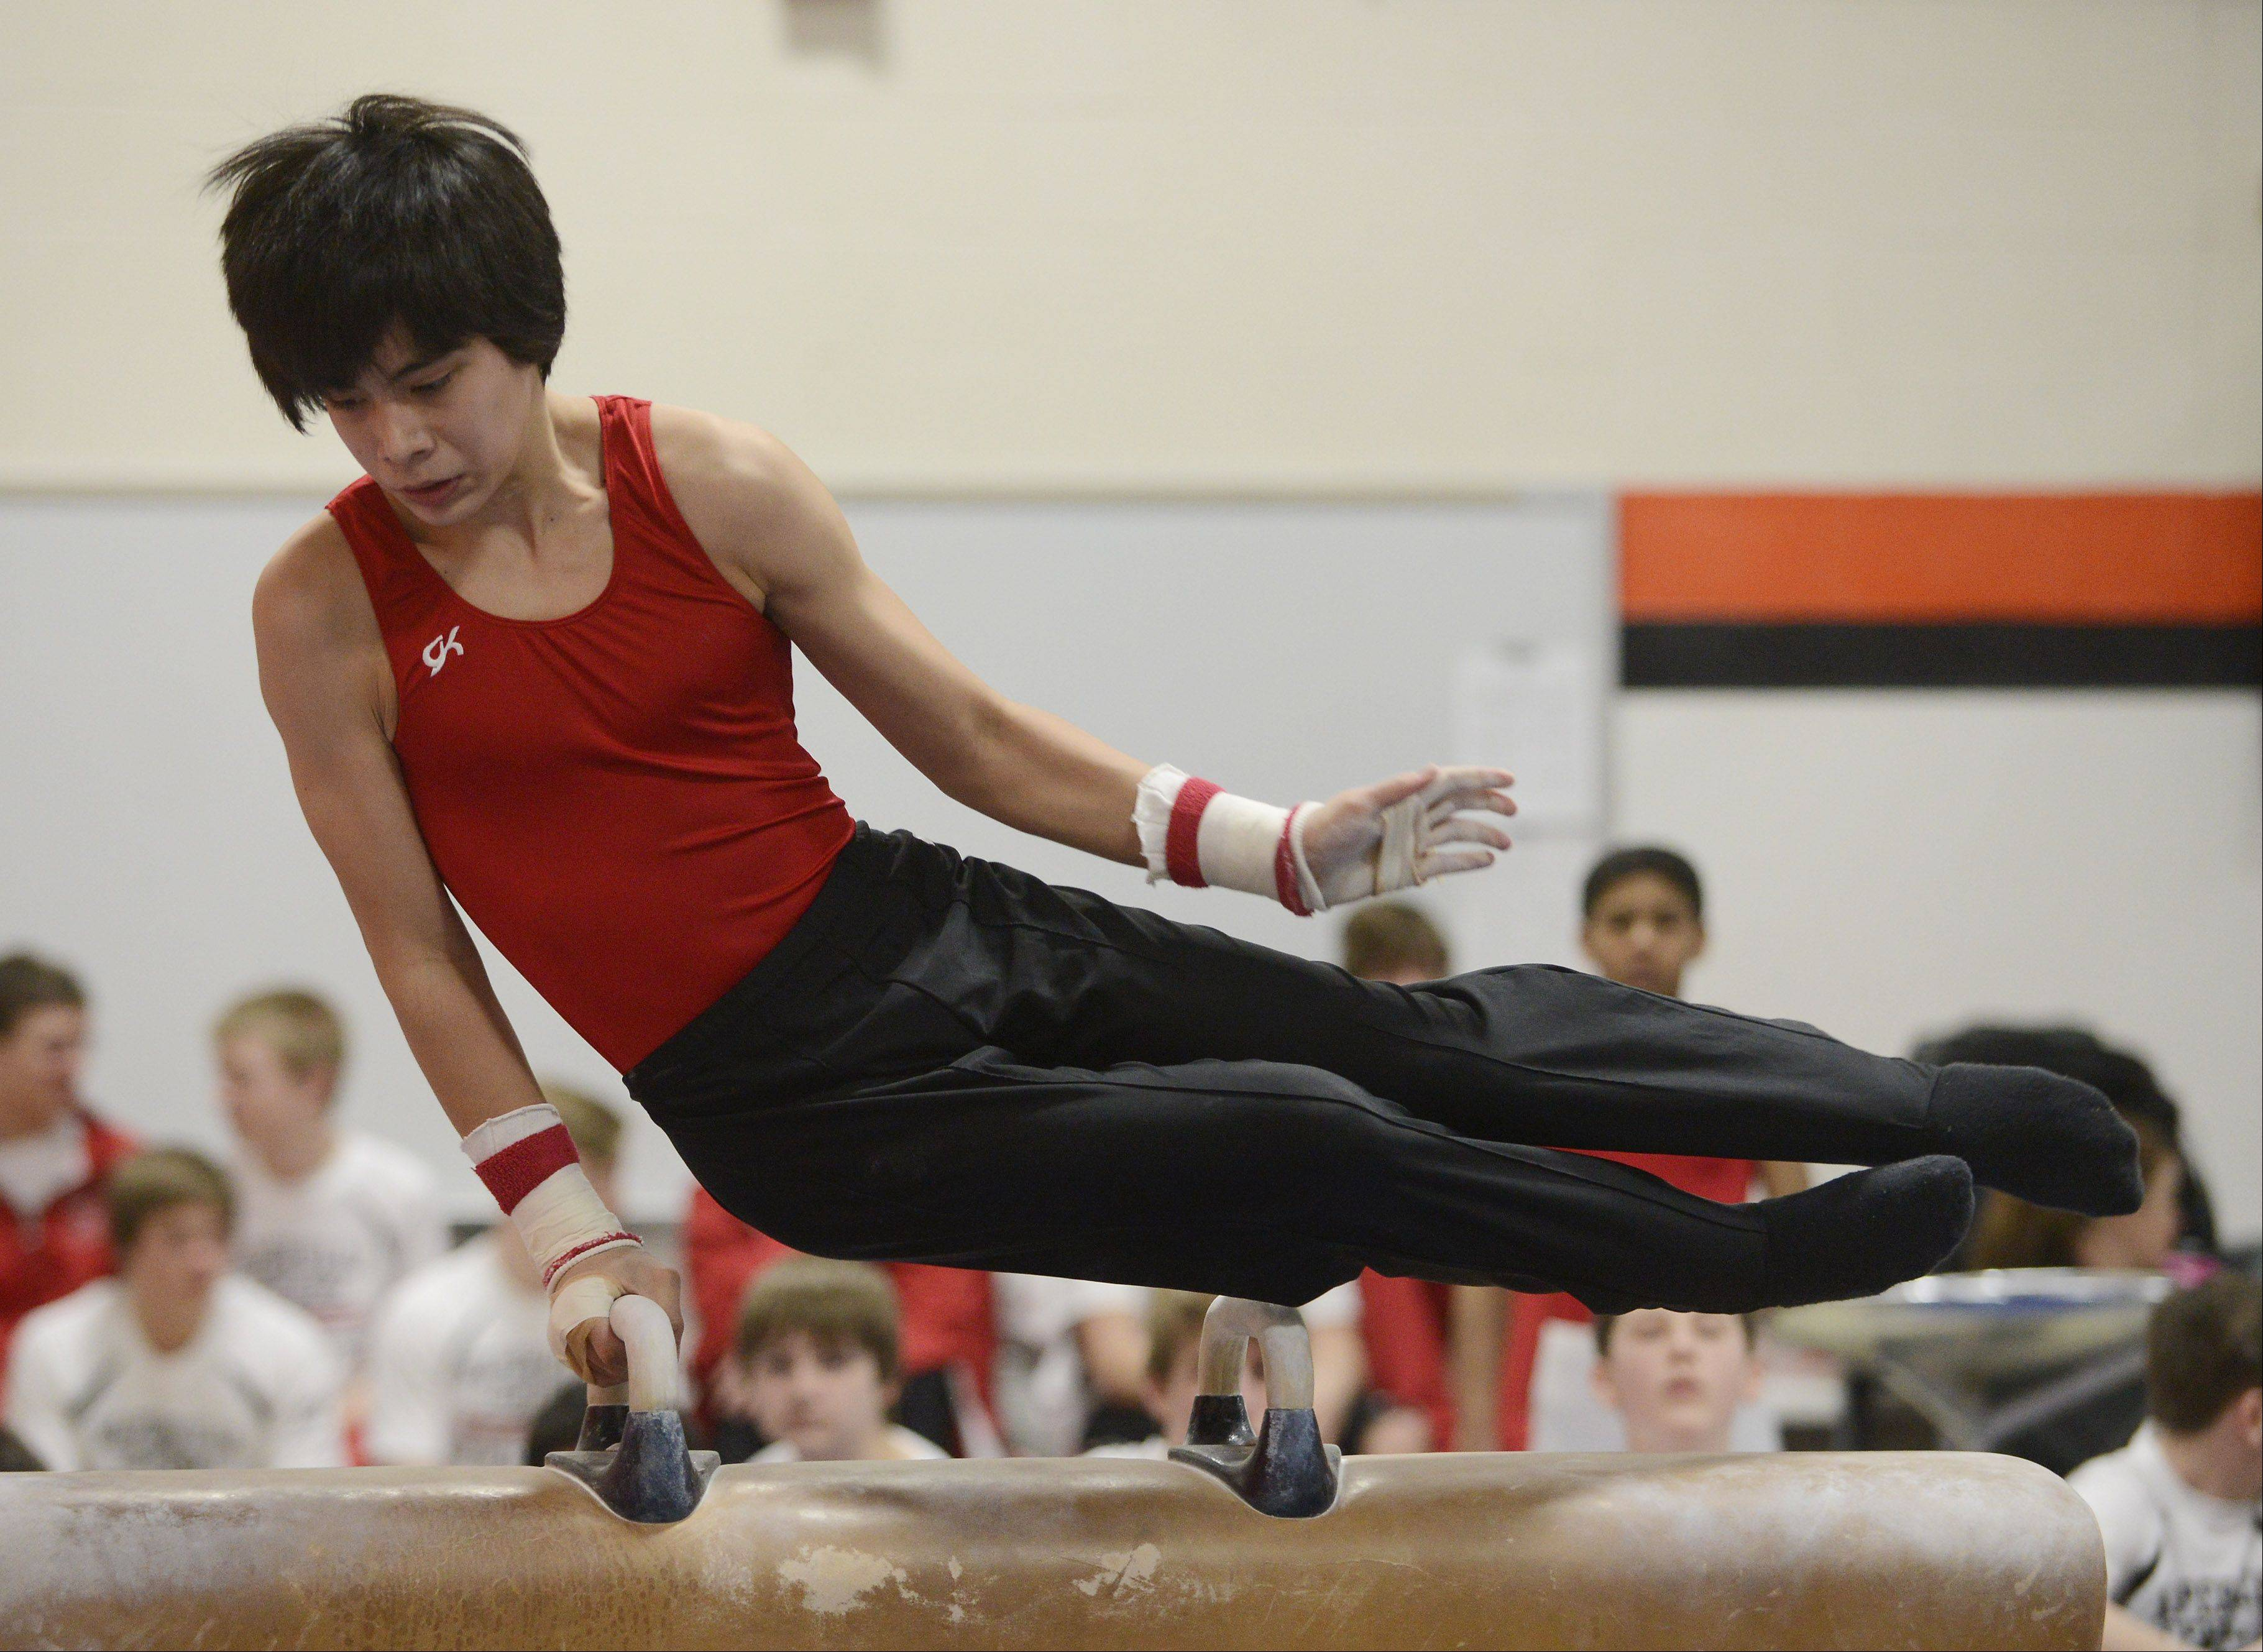 Naperville Central's Keenan Oshiro competes on the pommel horse during Saturday's boys gymnastics meet at Libertyville High School.